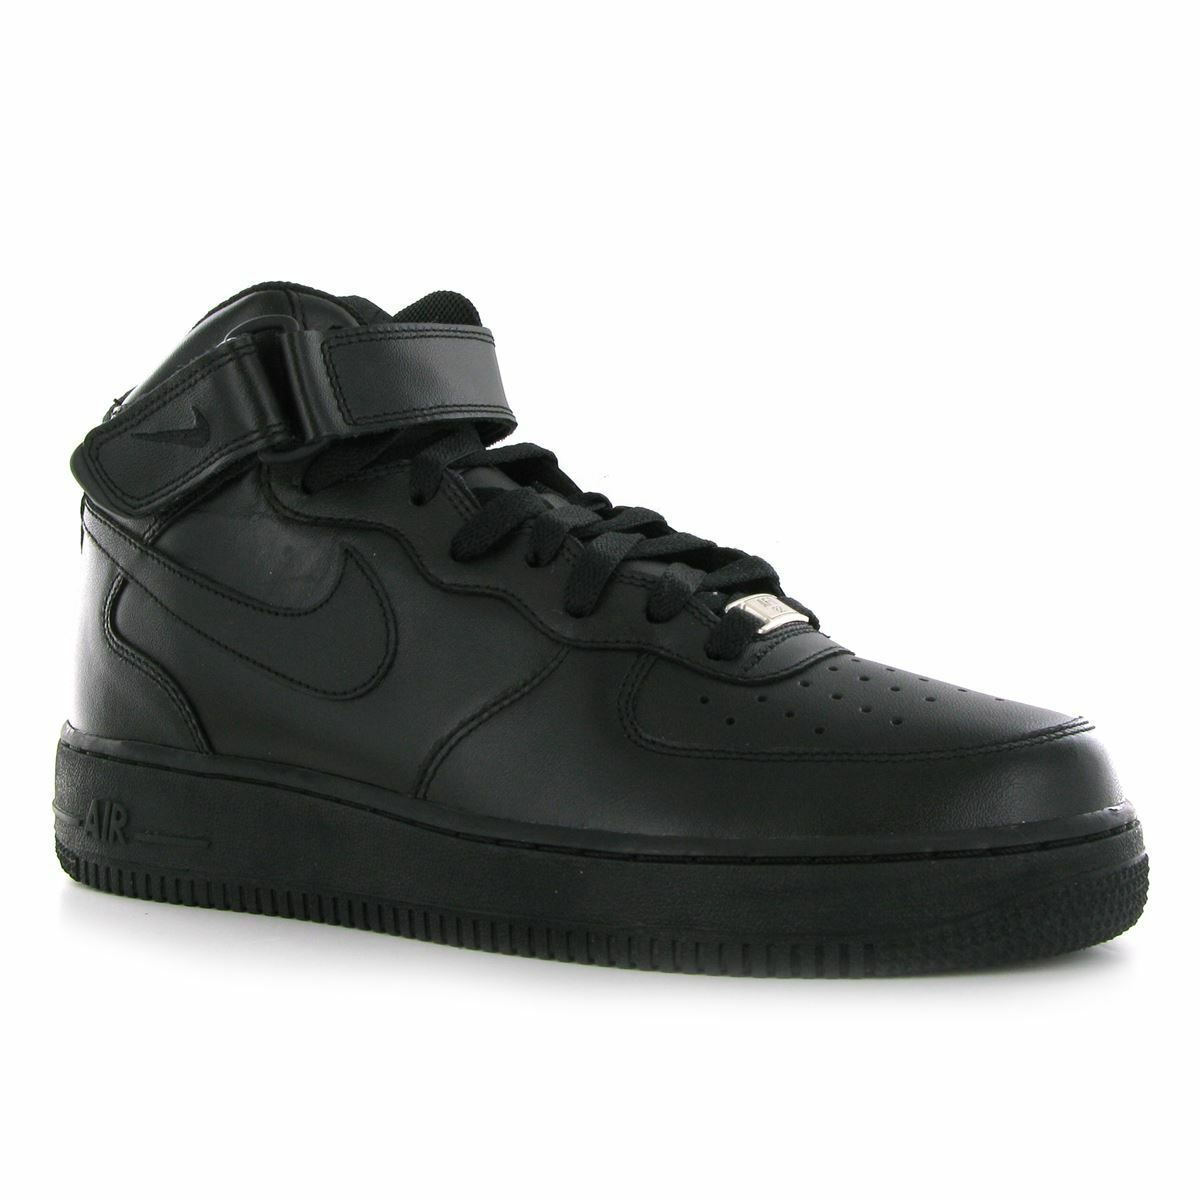 Nike Air Force 1 Mid 07 Black Leather Mens Trainers Sneakers